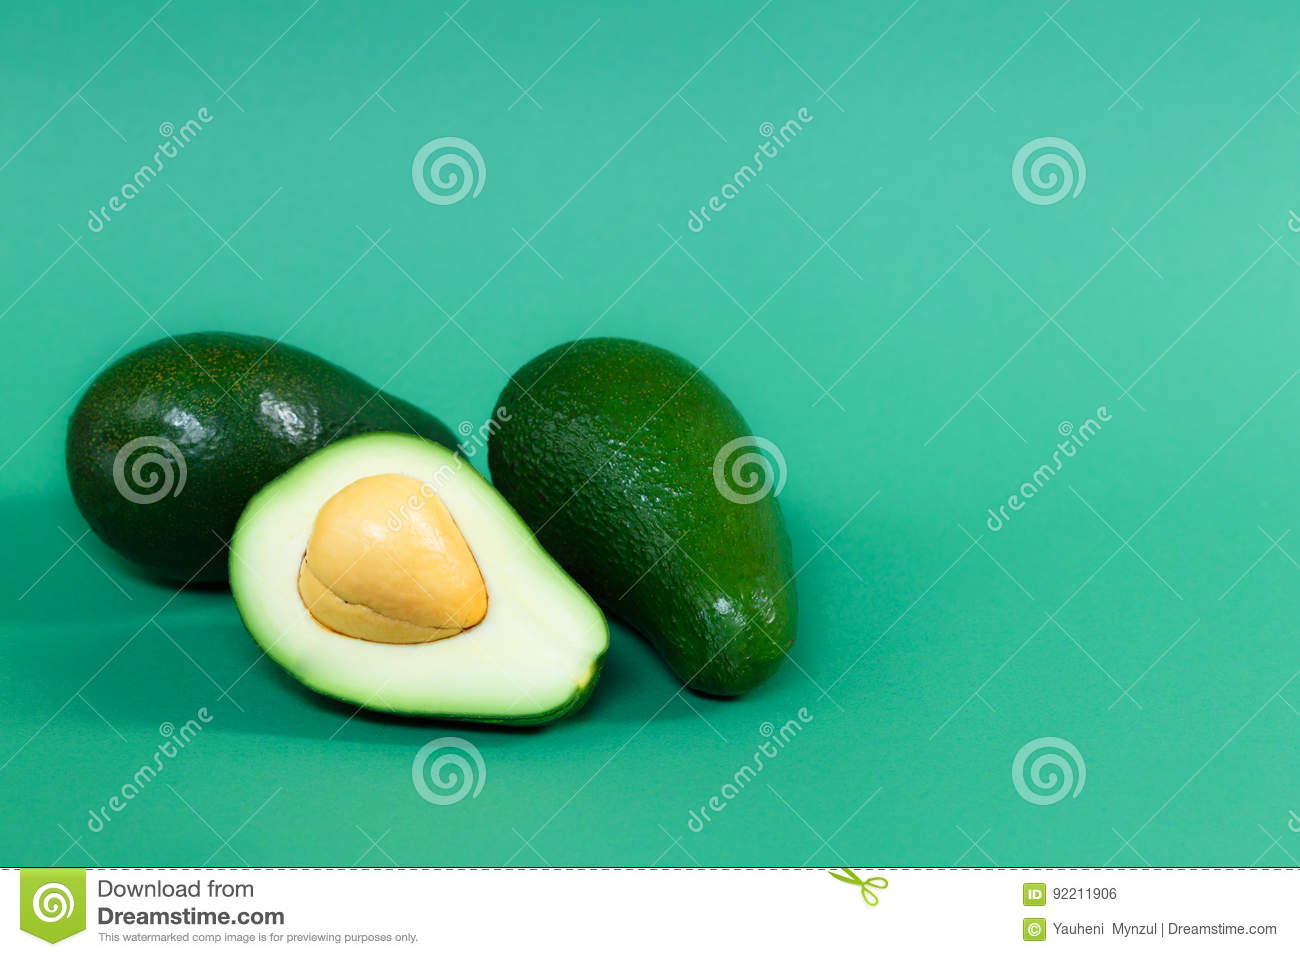 Fully ripened avocado on a green background